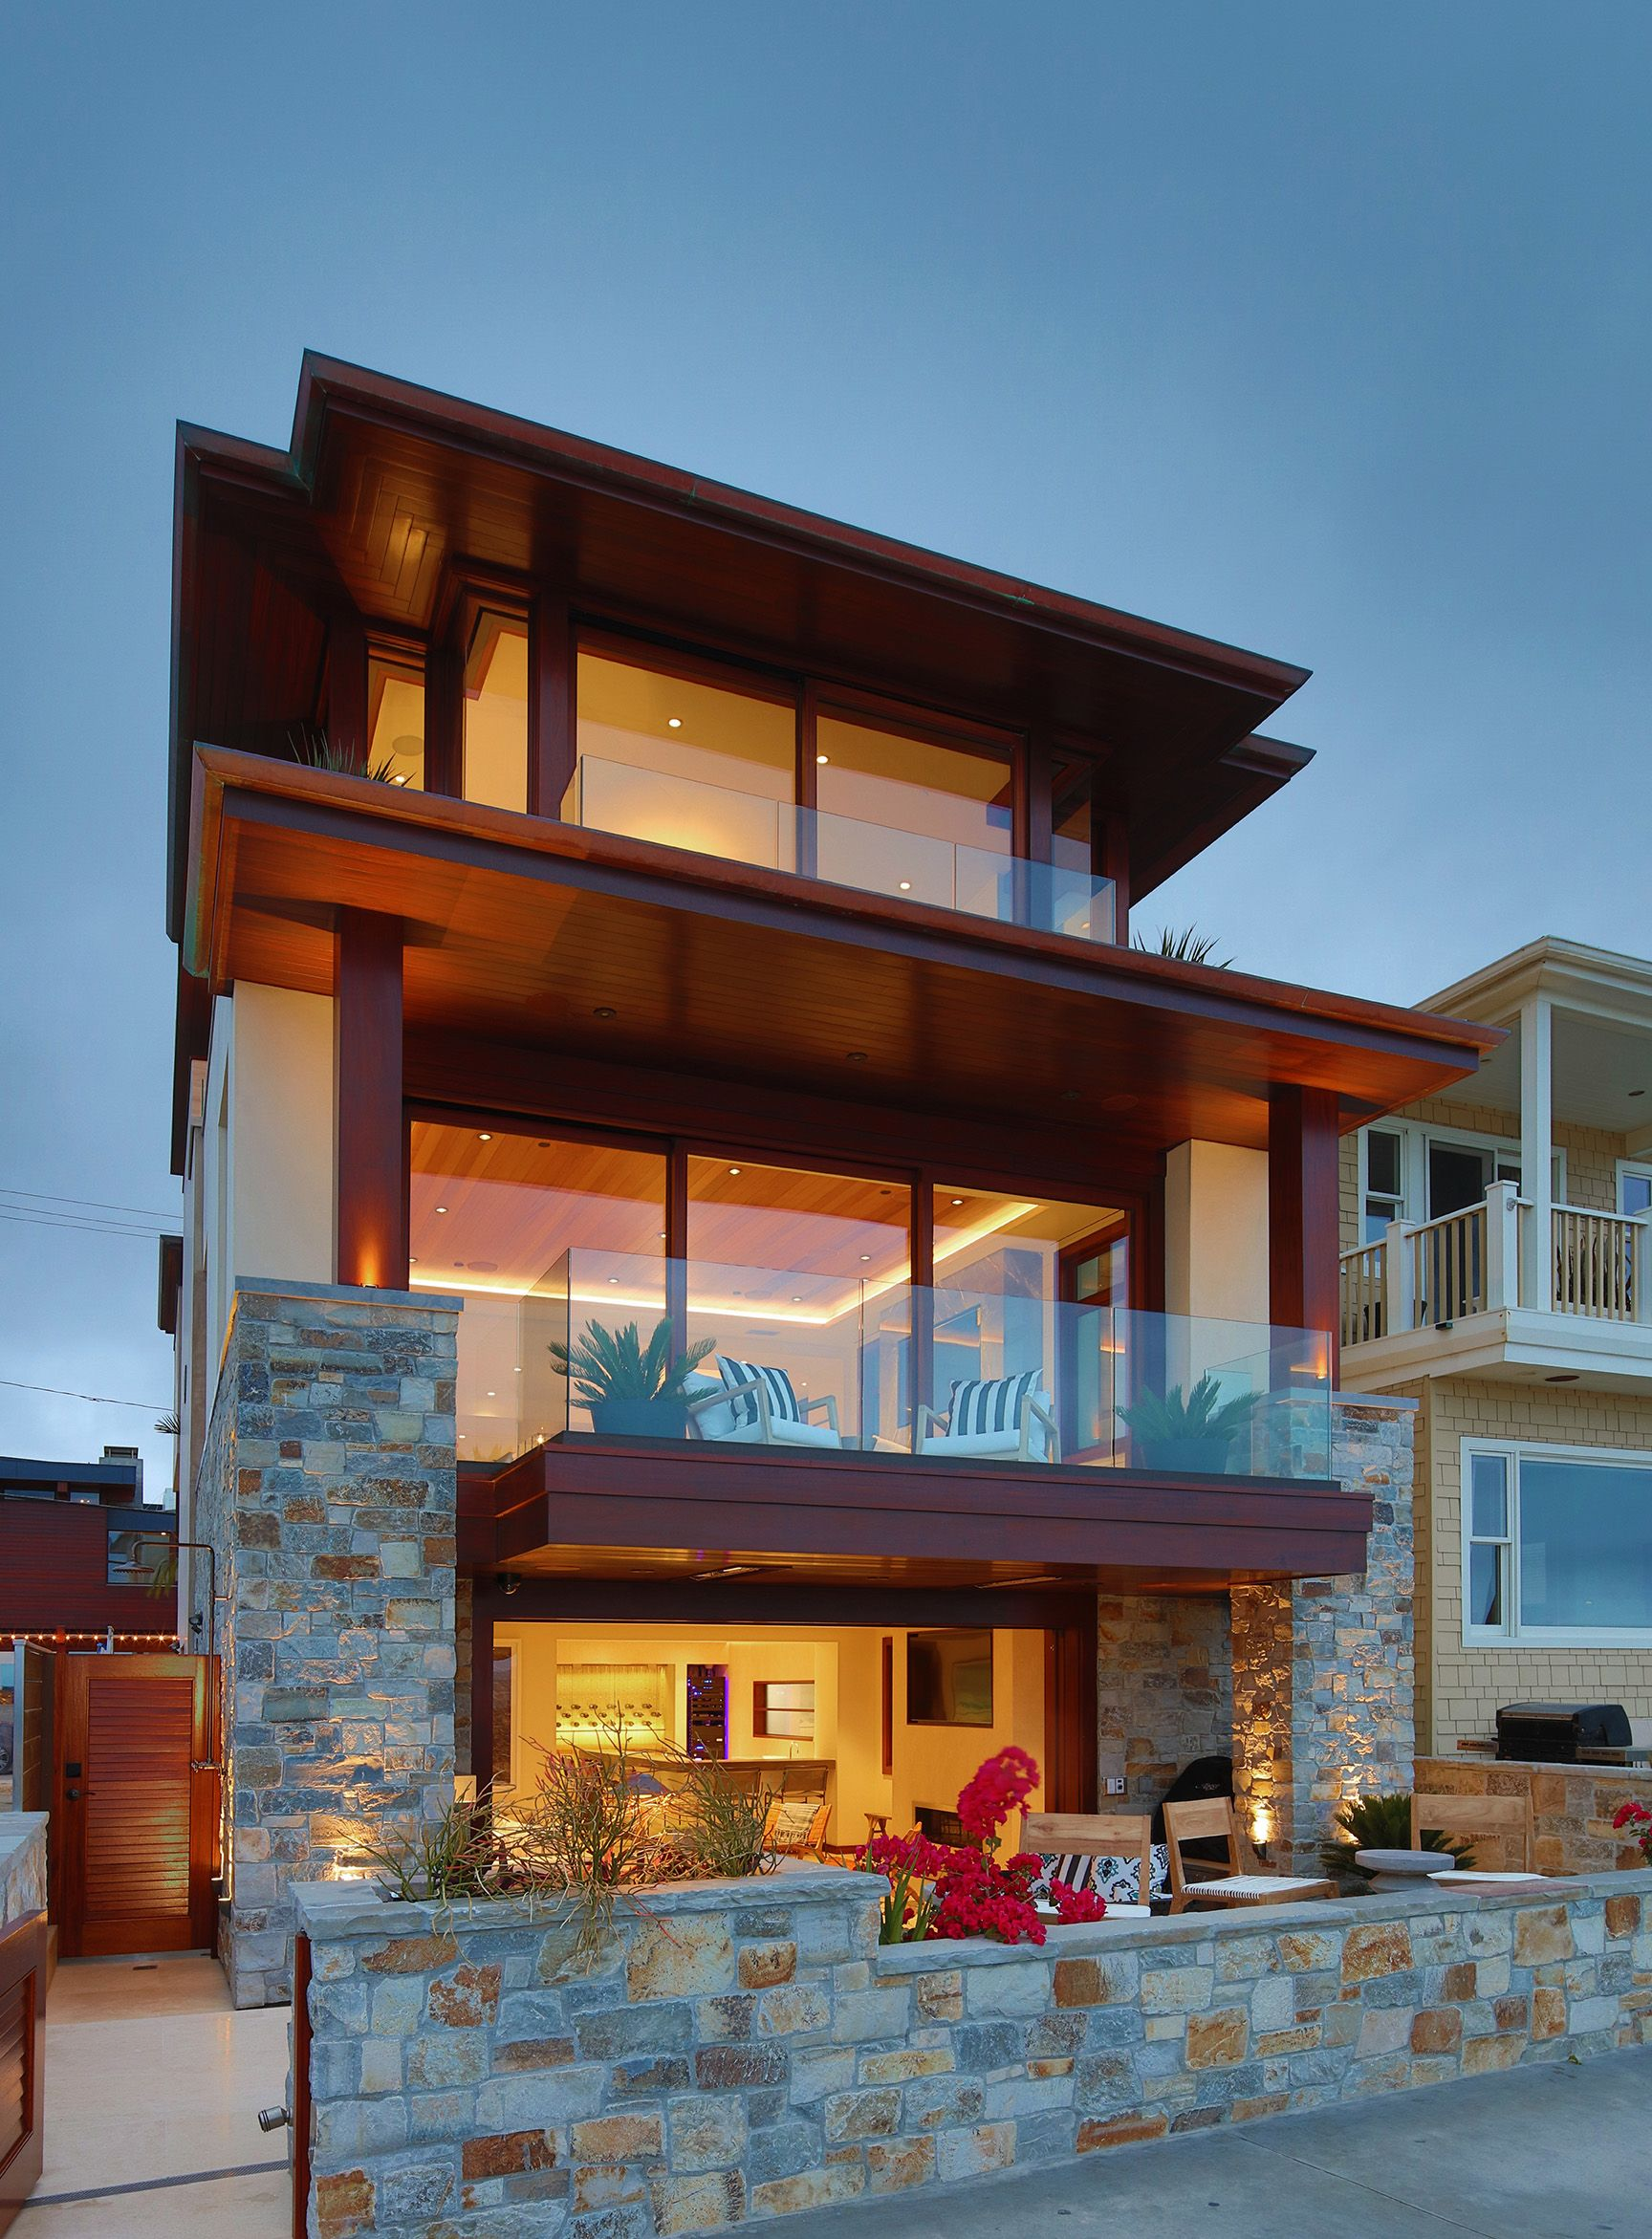 Modern Beachfront Home Exterior Beachfront House Small House Design Exterior Contemporary Beach House